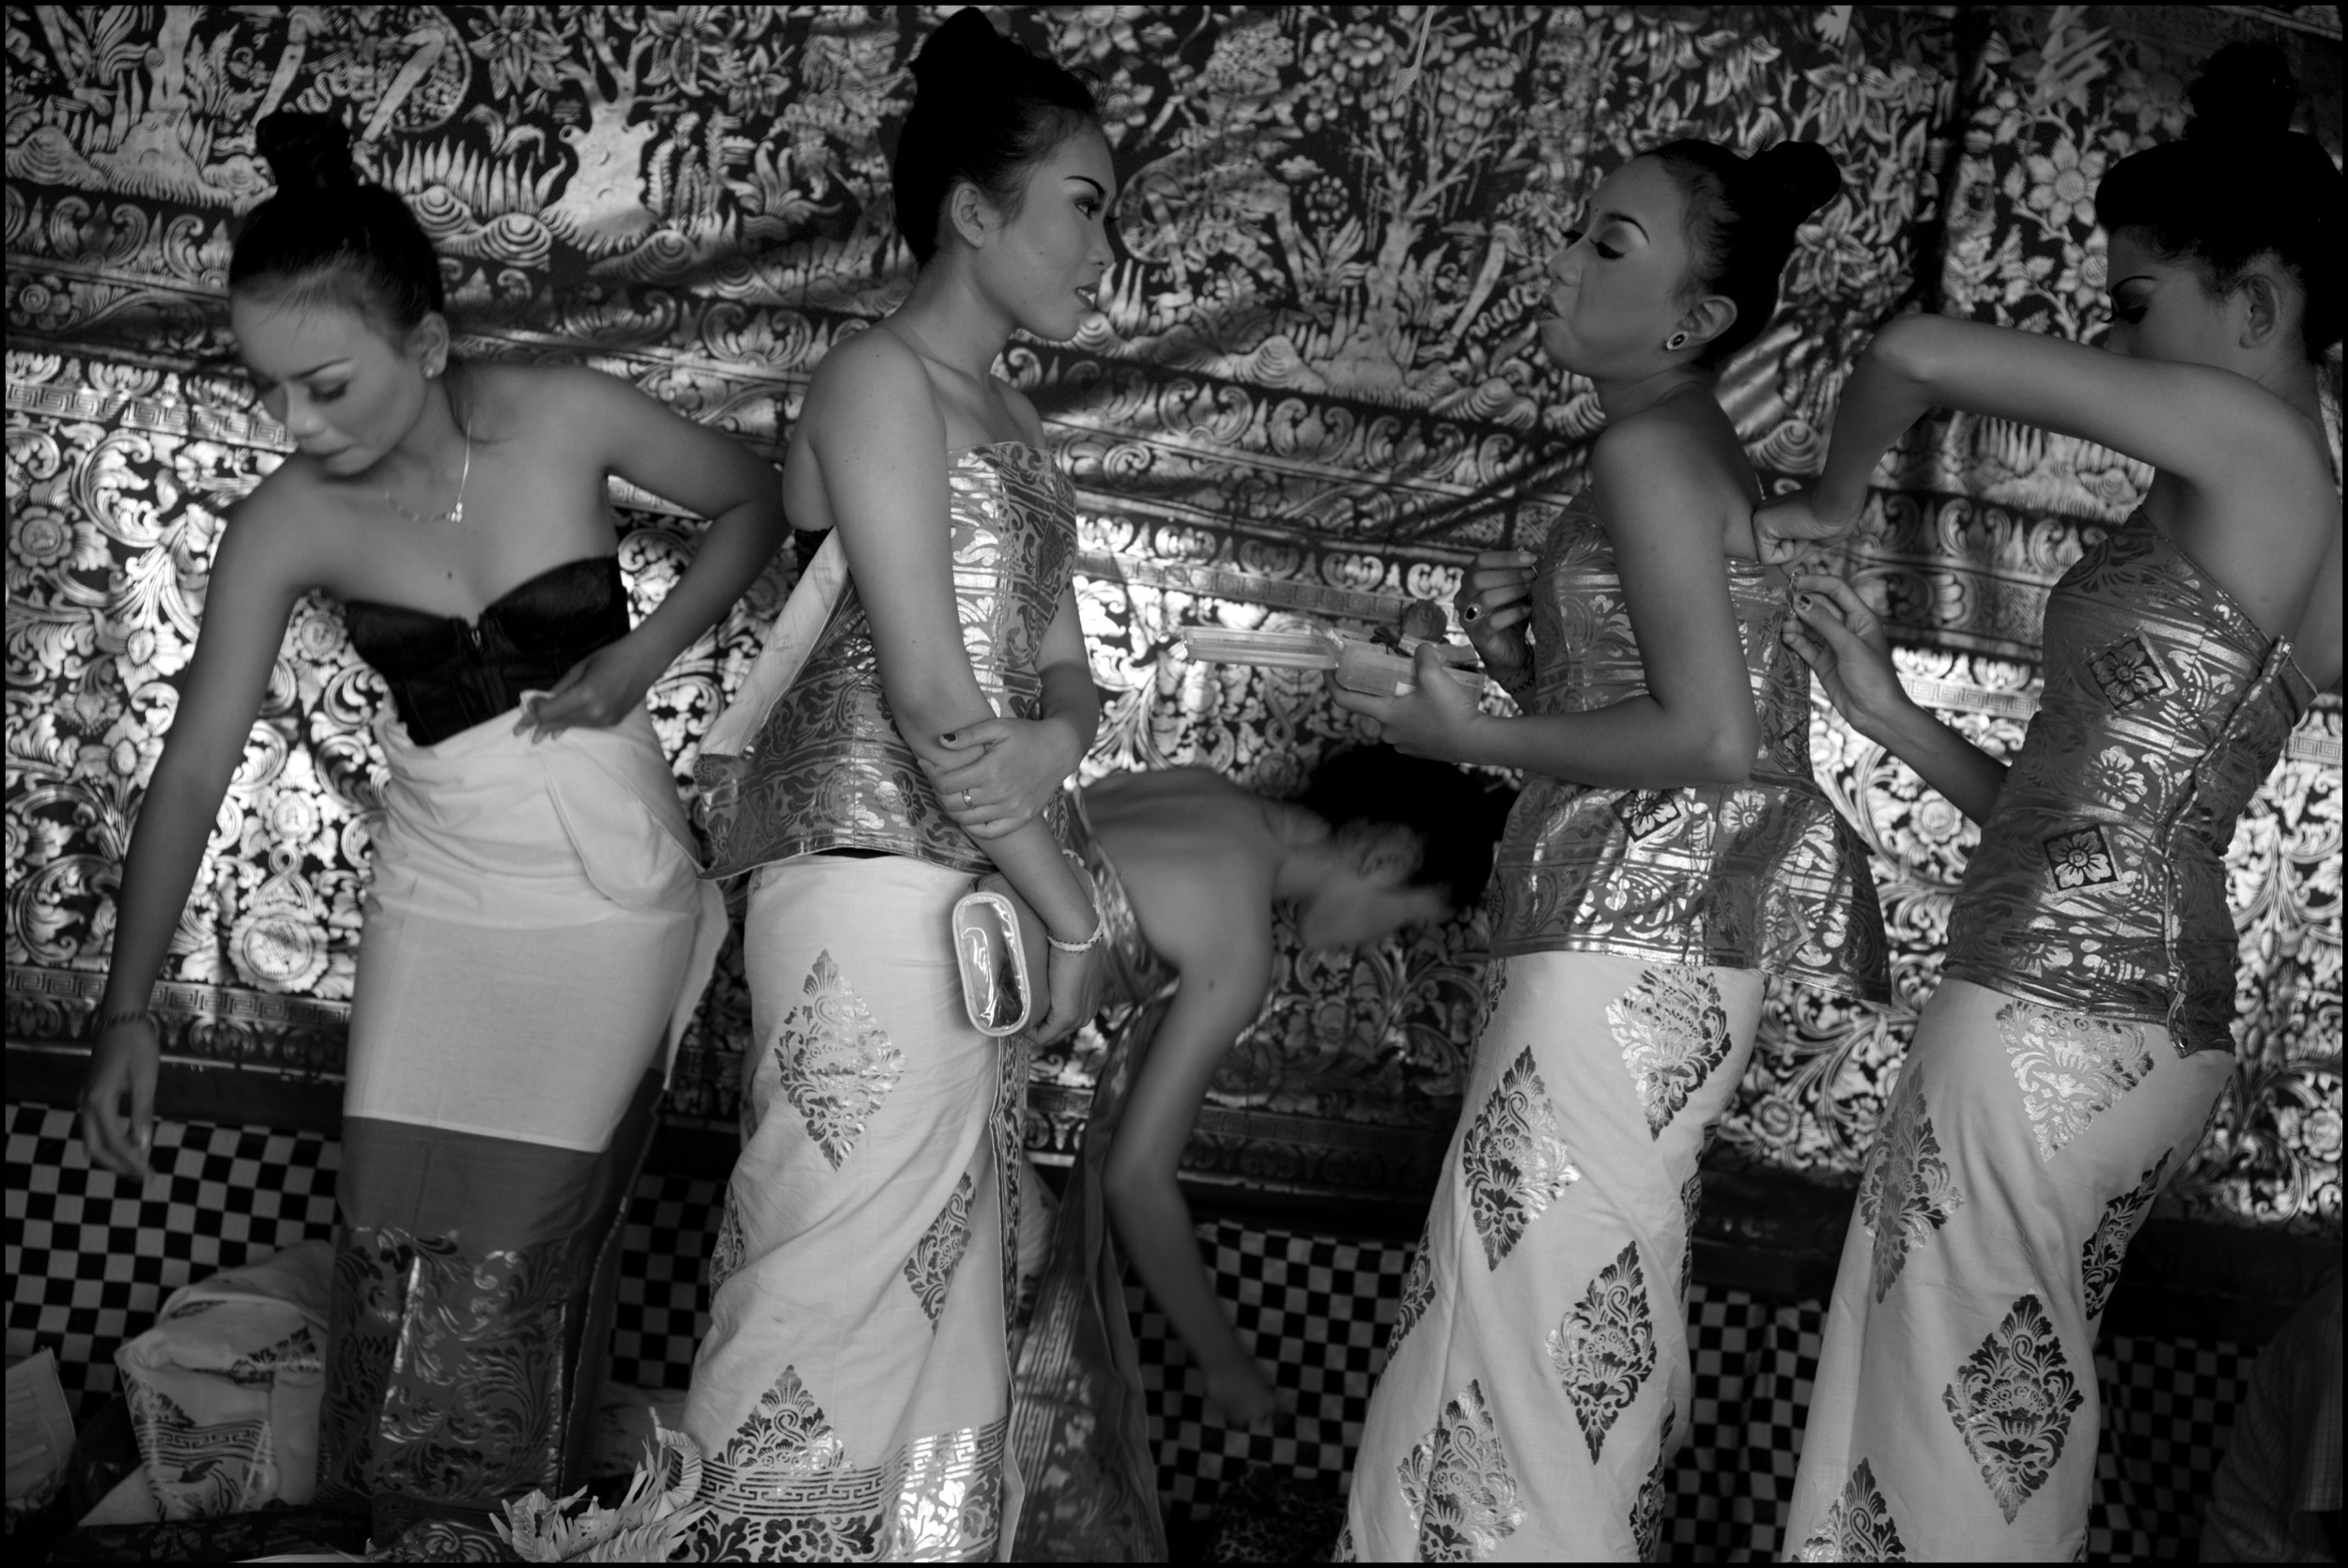 Students from the Indonesia Institute of Arts dress up for a rejong traditional dance in the Batur temple; Kinmantan, Bali.